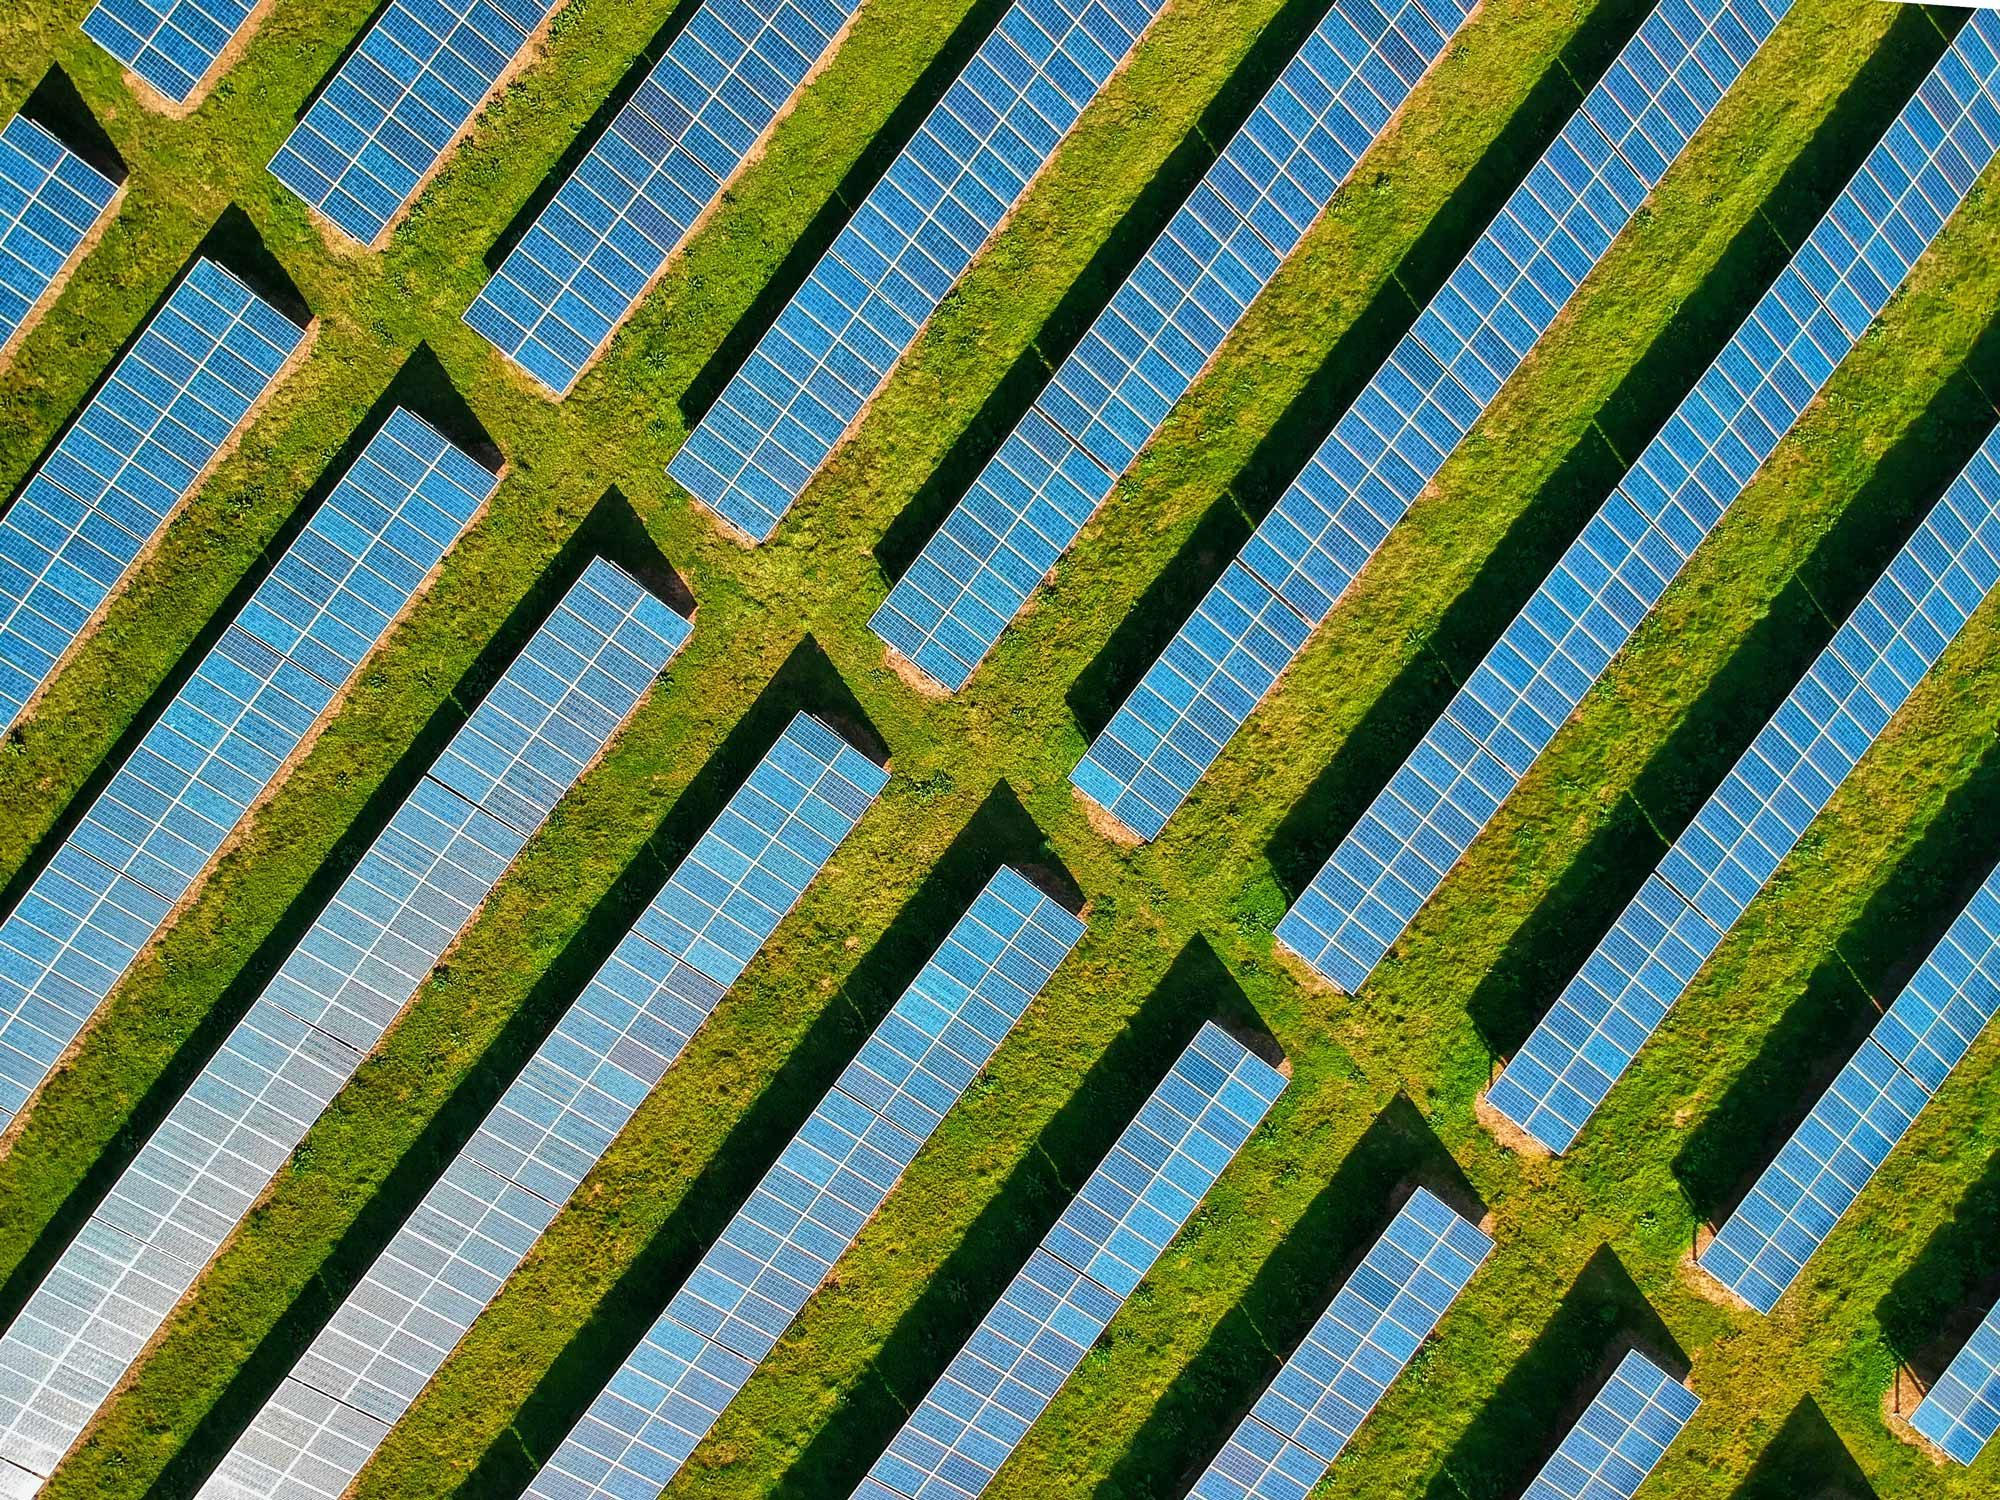 Agrivoltaics: Renewable energy and food combined